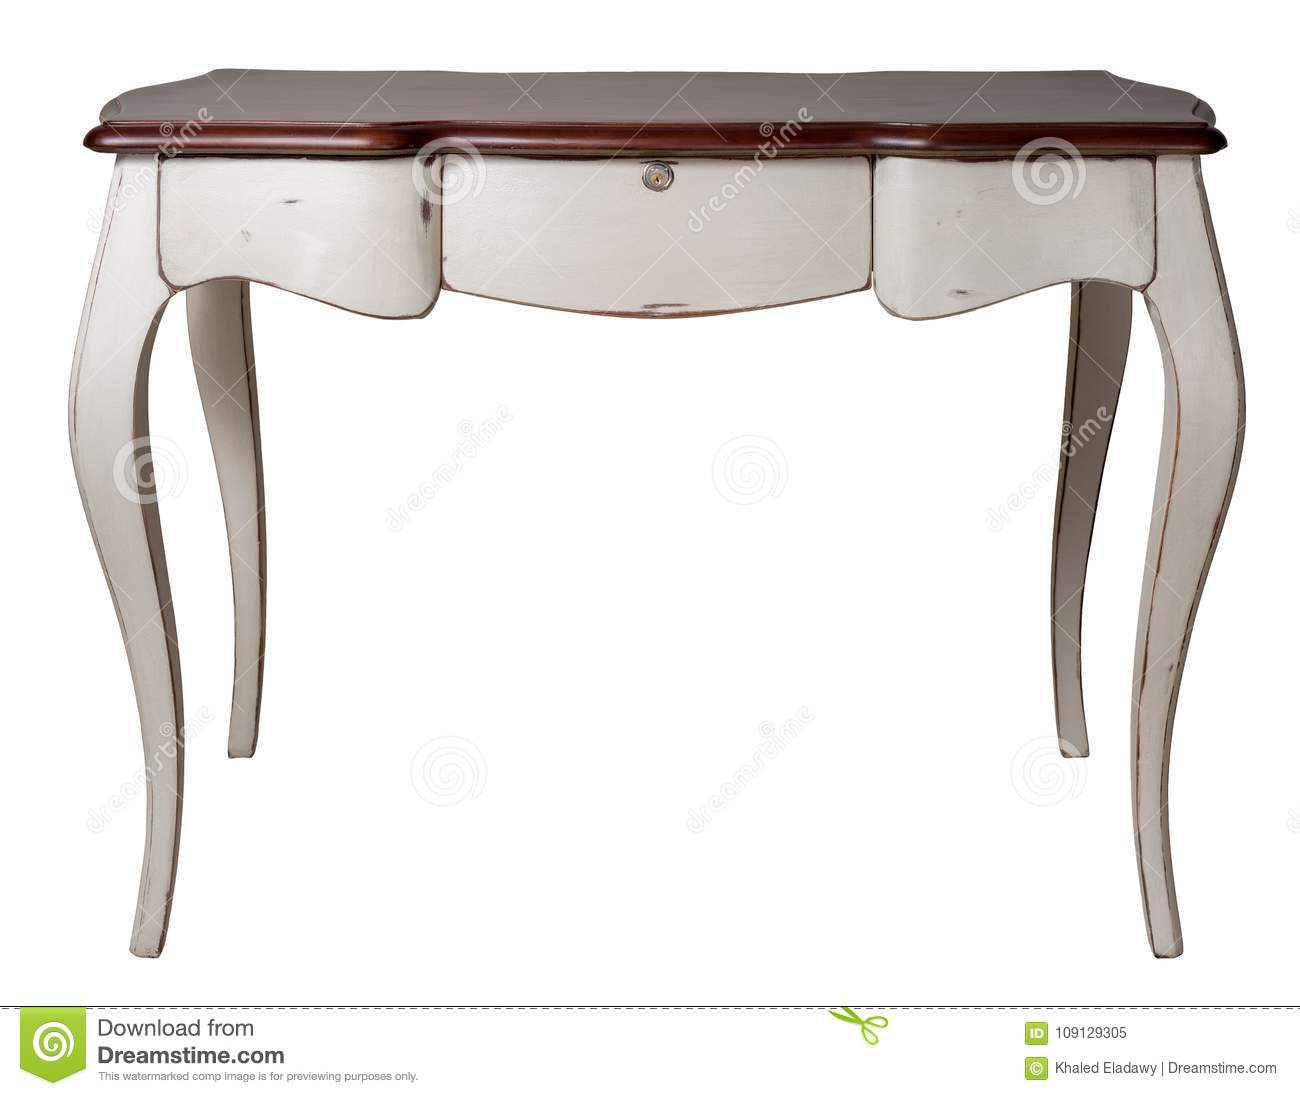 Retro wooden desk table with white legs and three drawers isolated on white background including clipping path